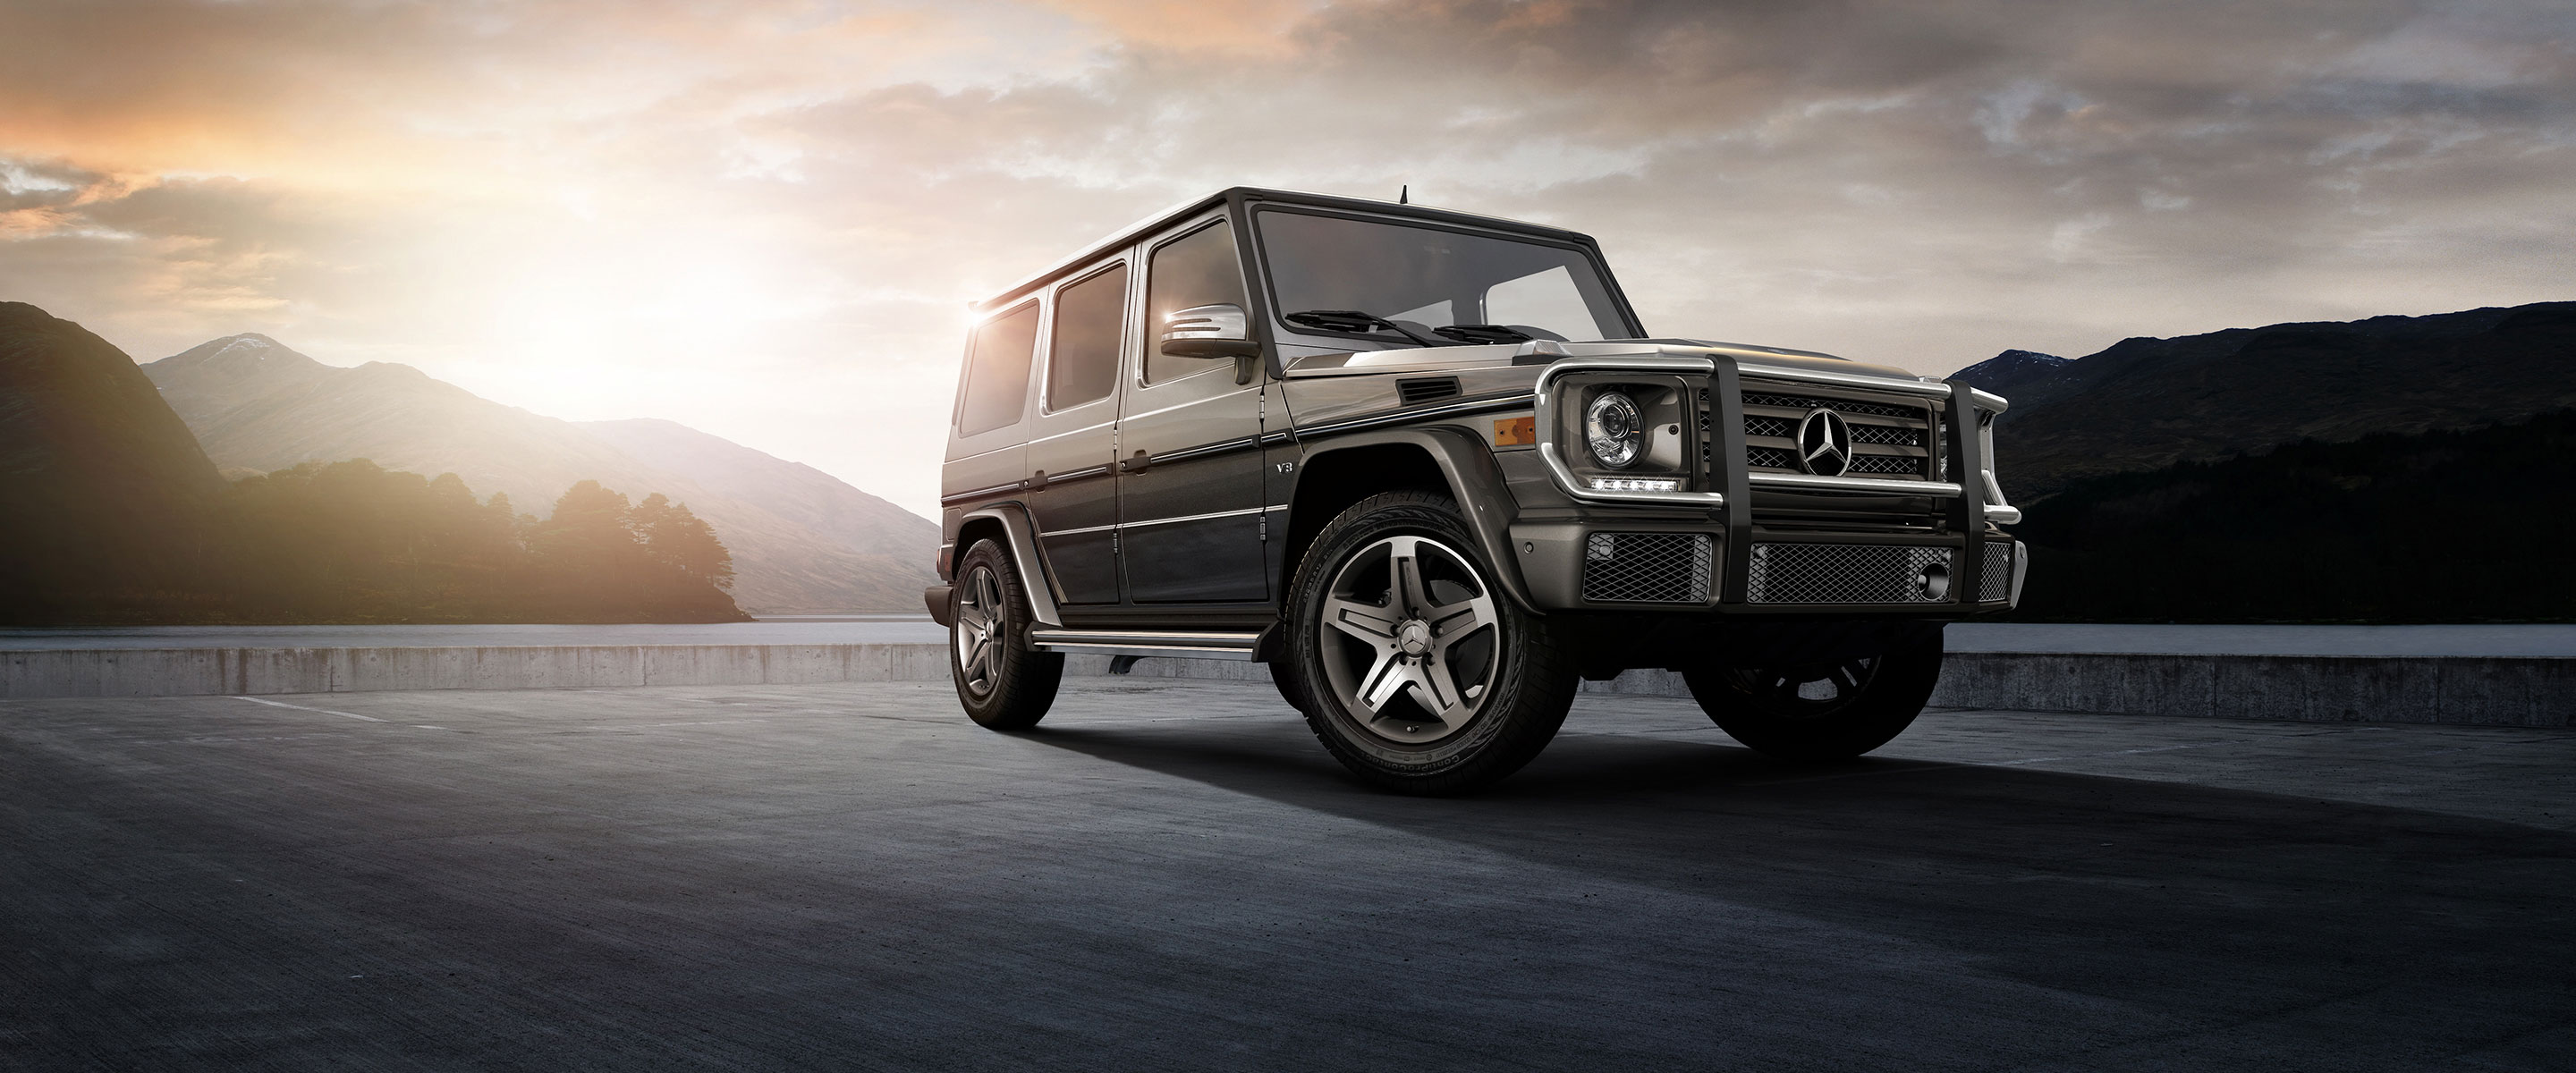 New mercedes benz g class lease and finance specials for Special lease offers mercedes benz